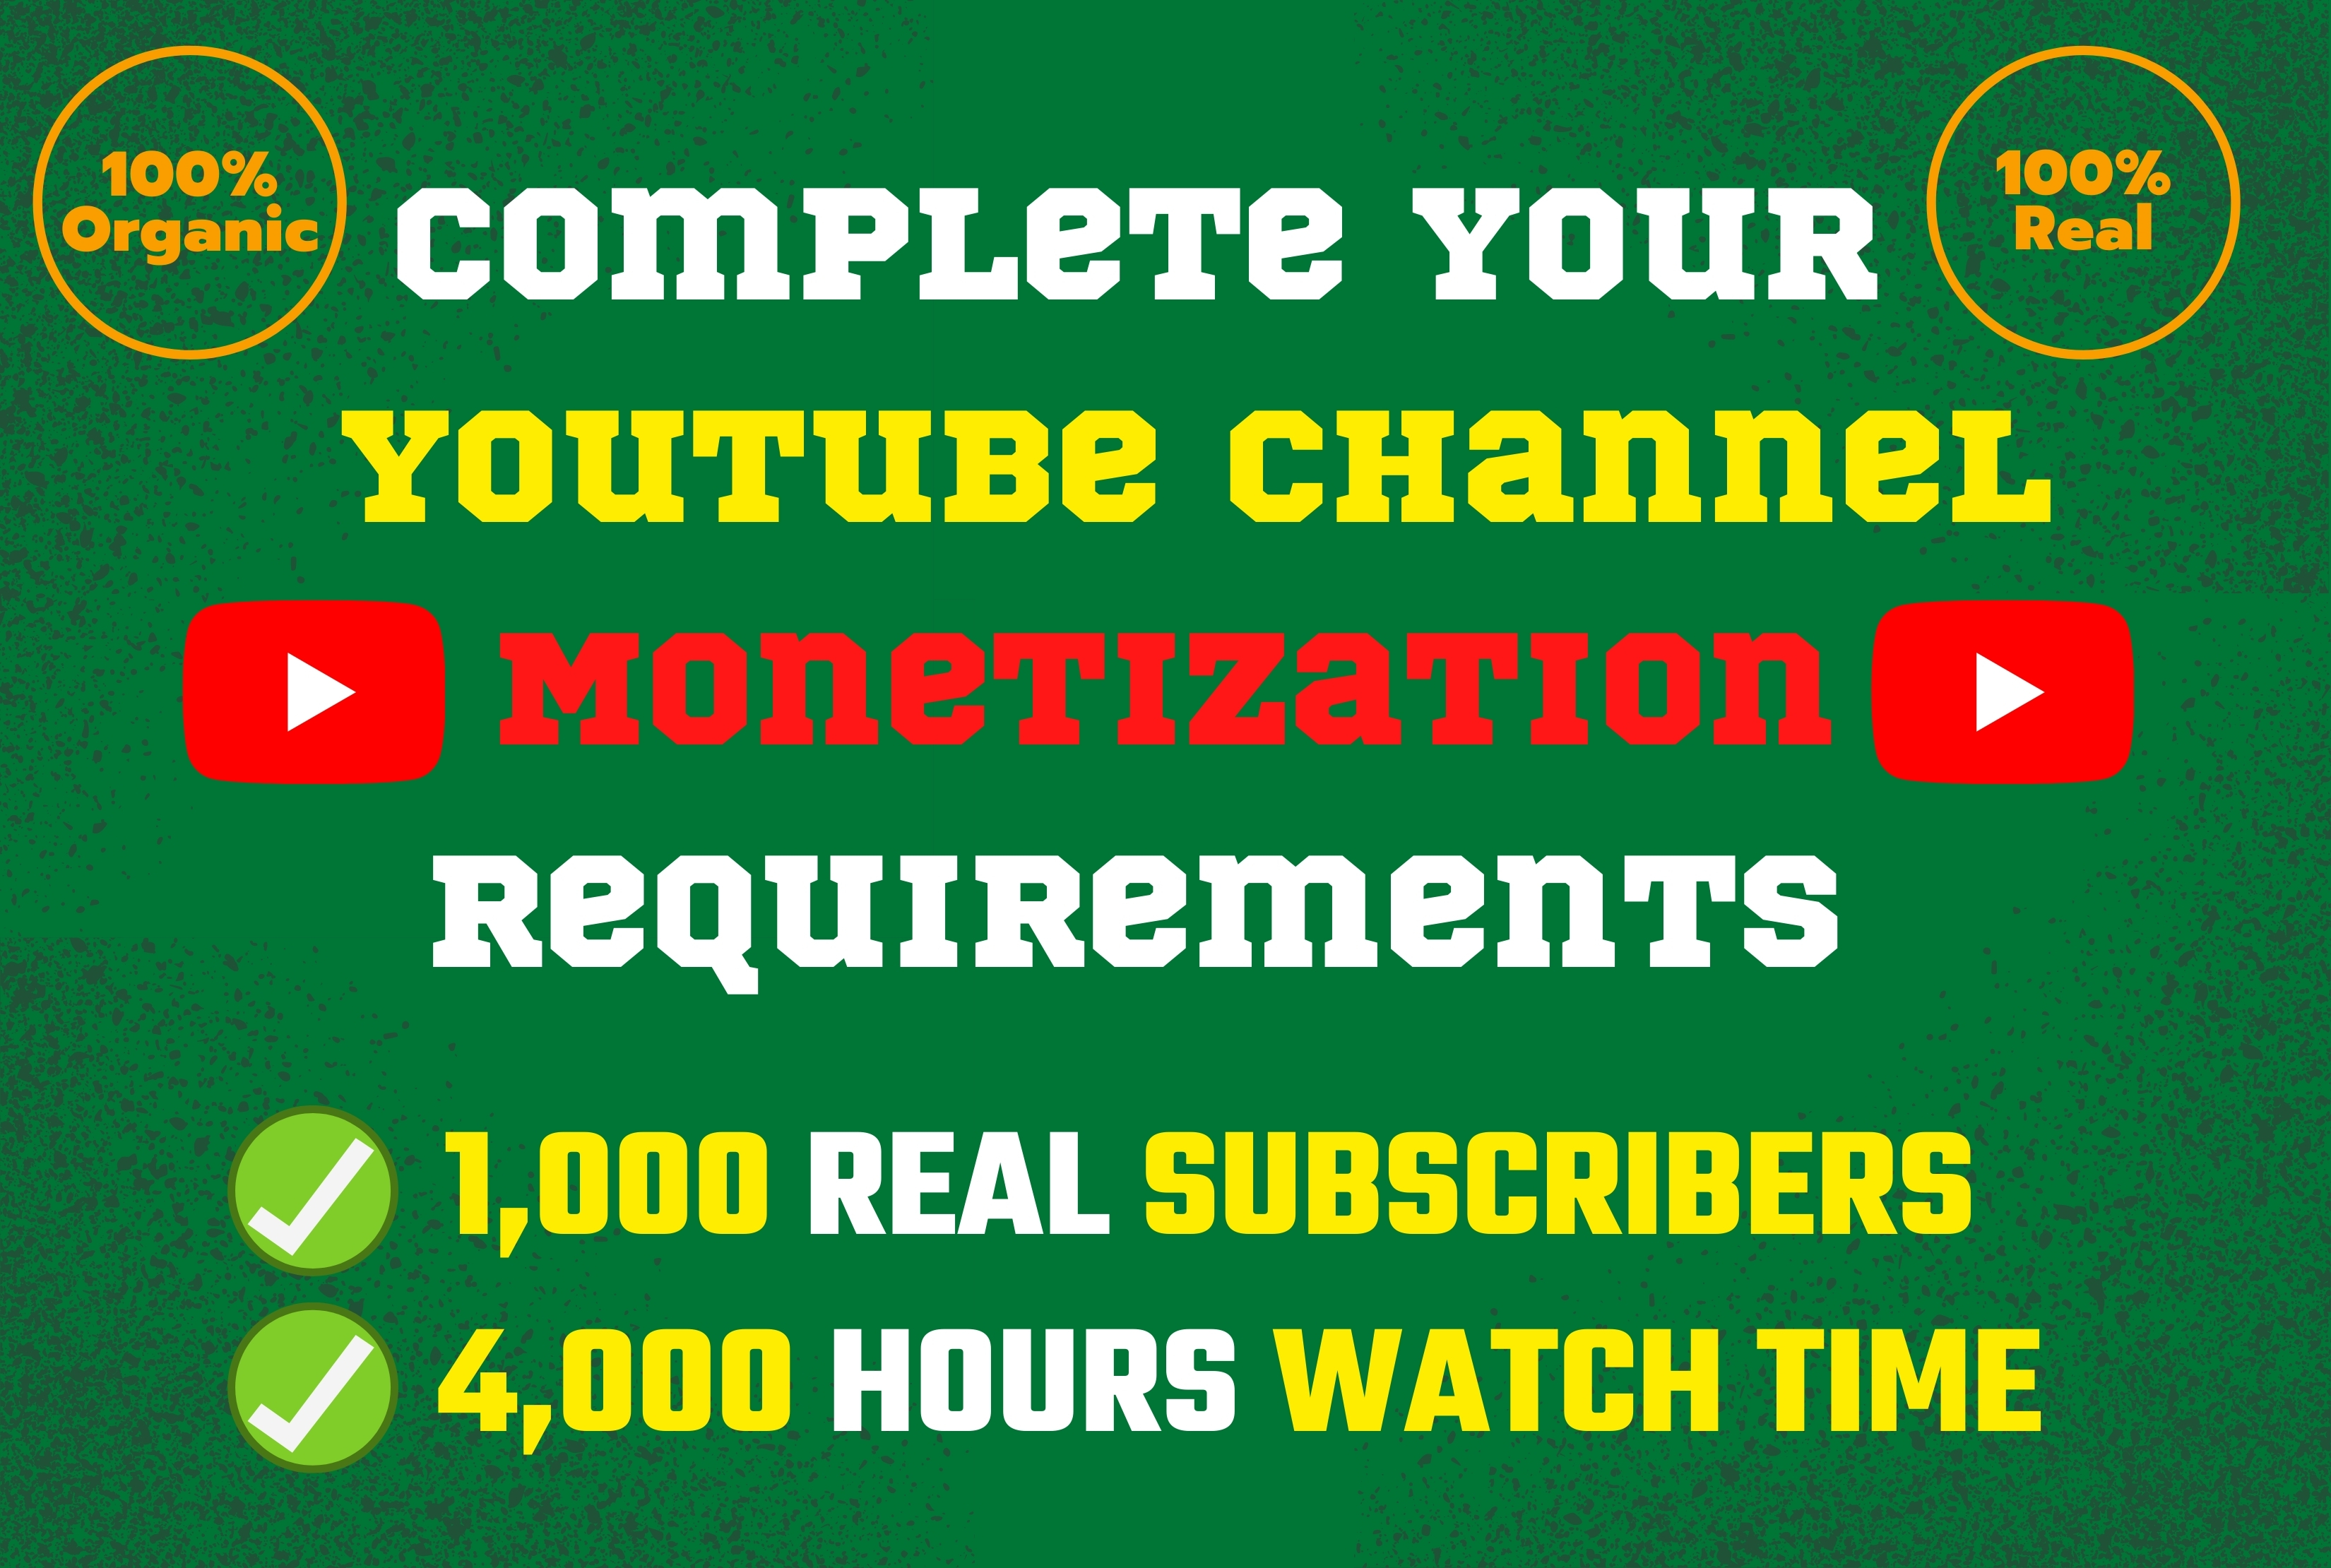 I will do video campaign for complete youtube channel monetization